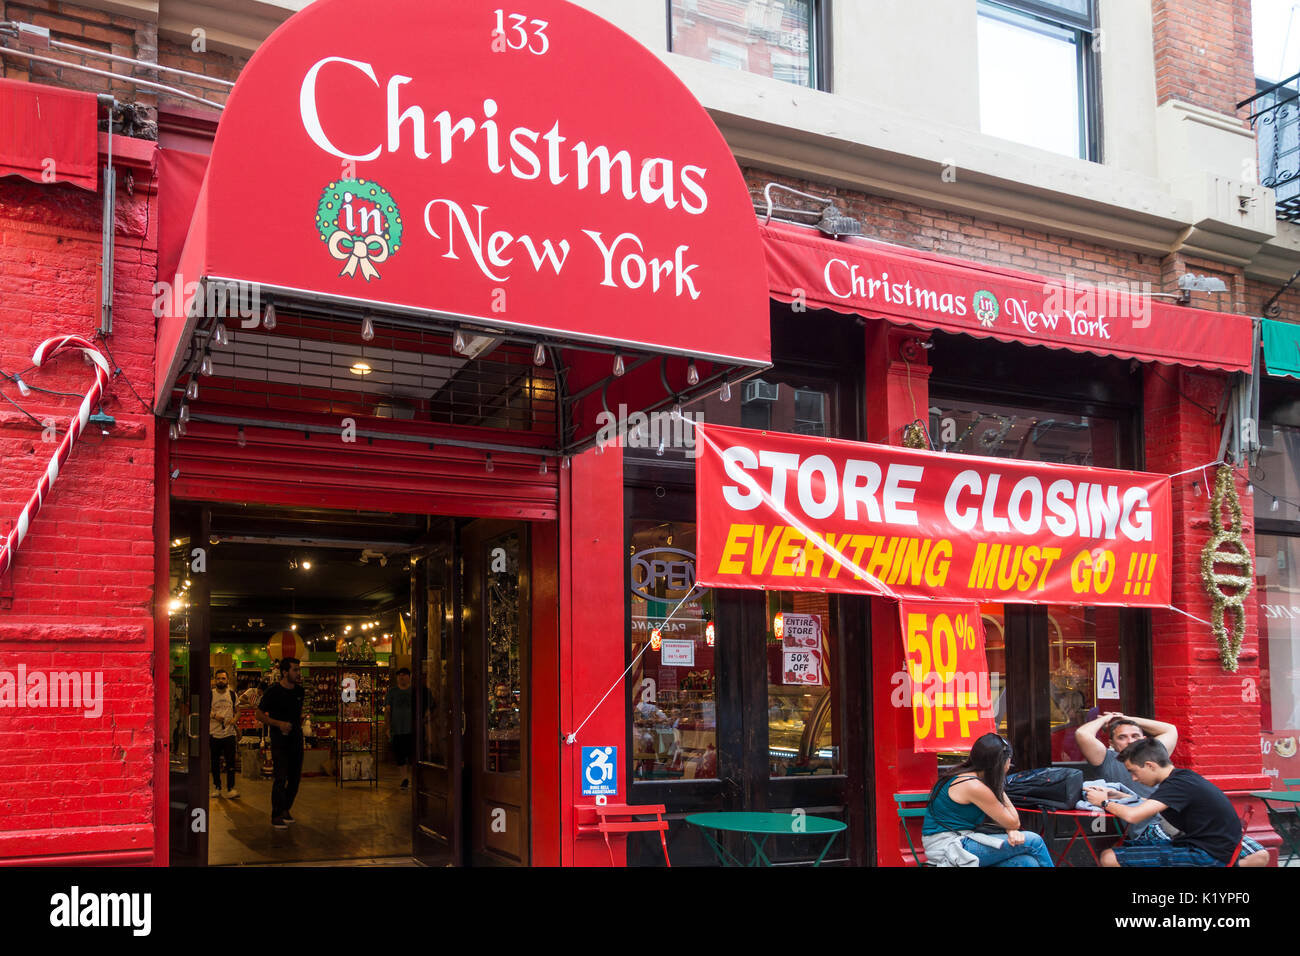 Little Christmas Italy.A Year Around Store In Little Italy In New York City Selling